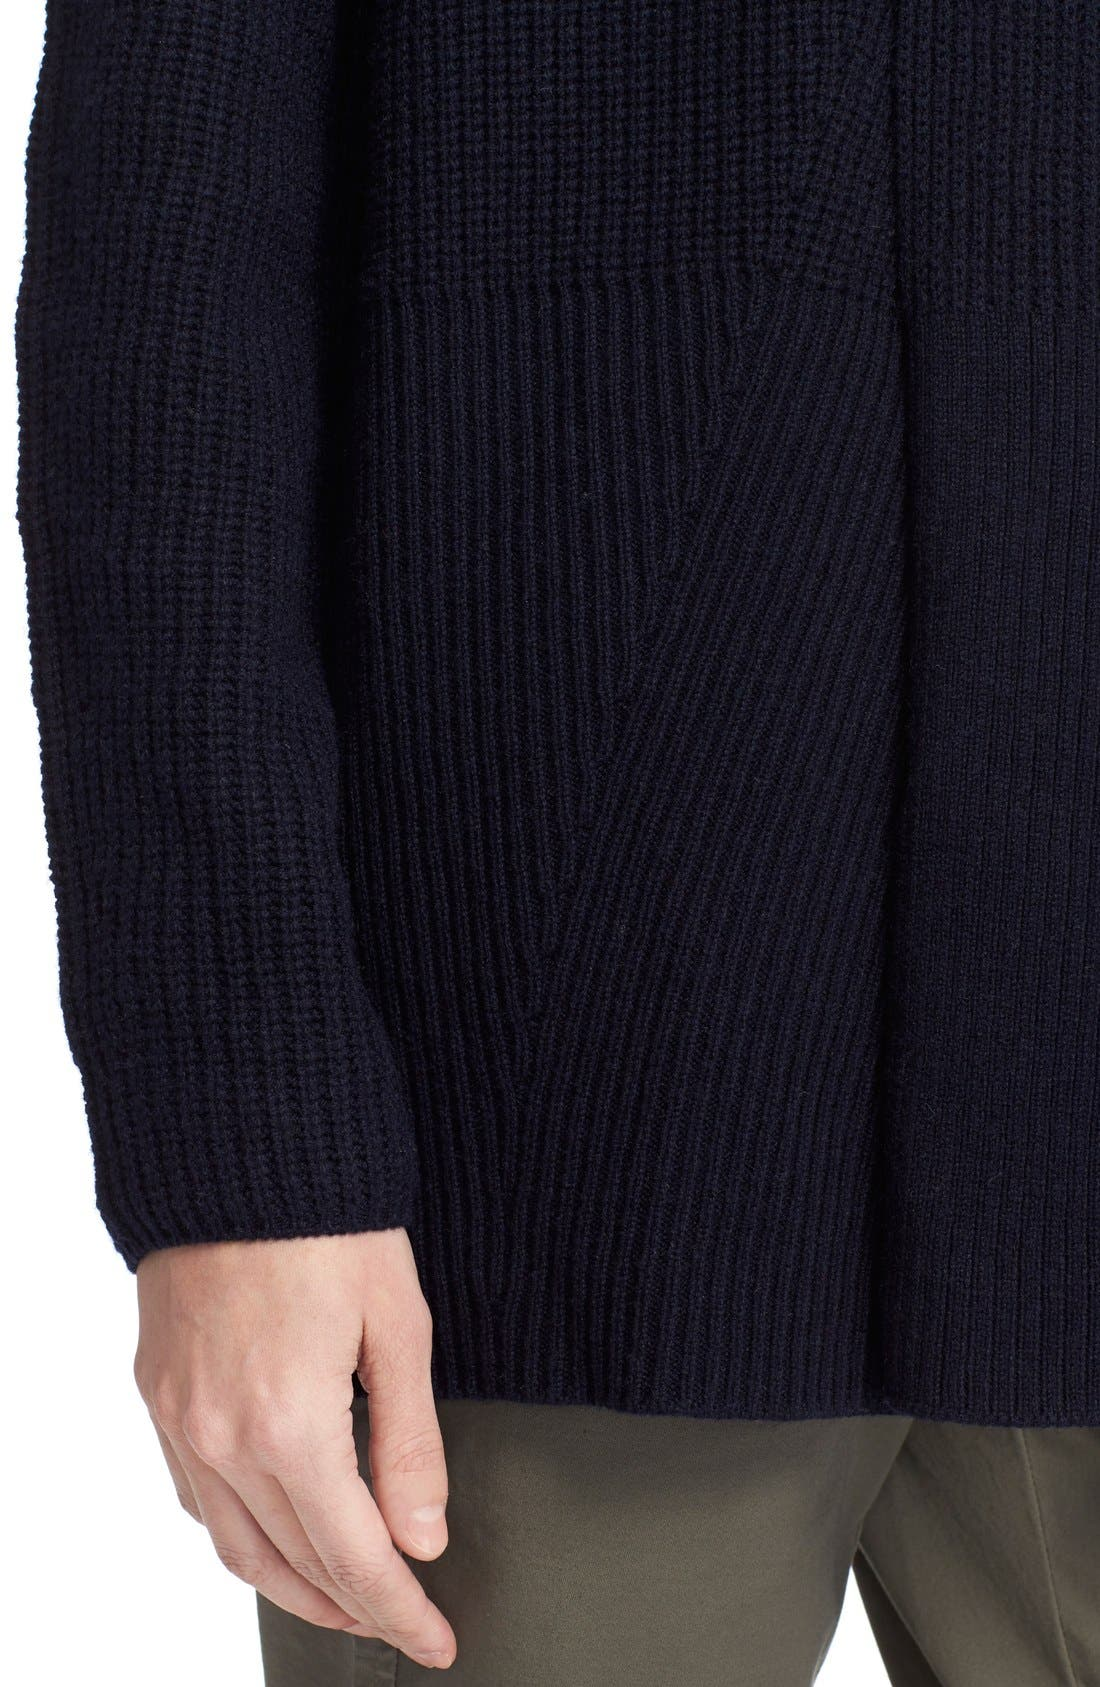 Directional Rib Wool & Cashmere Cardigan,                             Alternate thumbnail 4, color,                             403